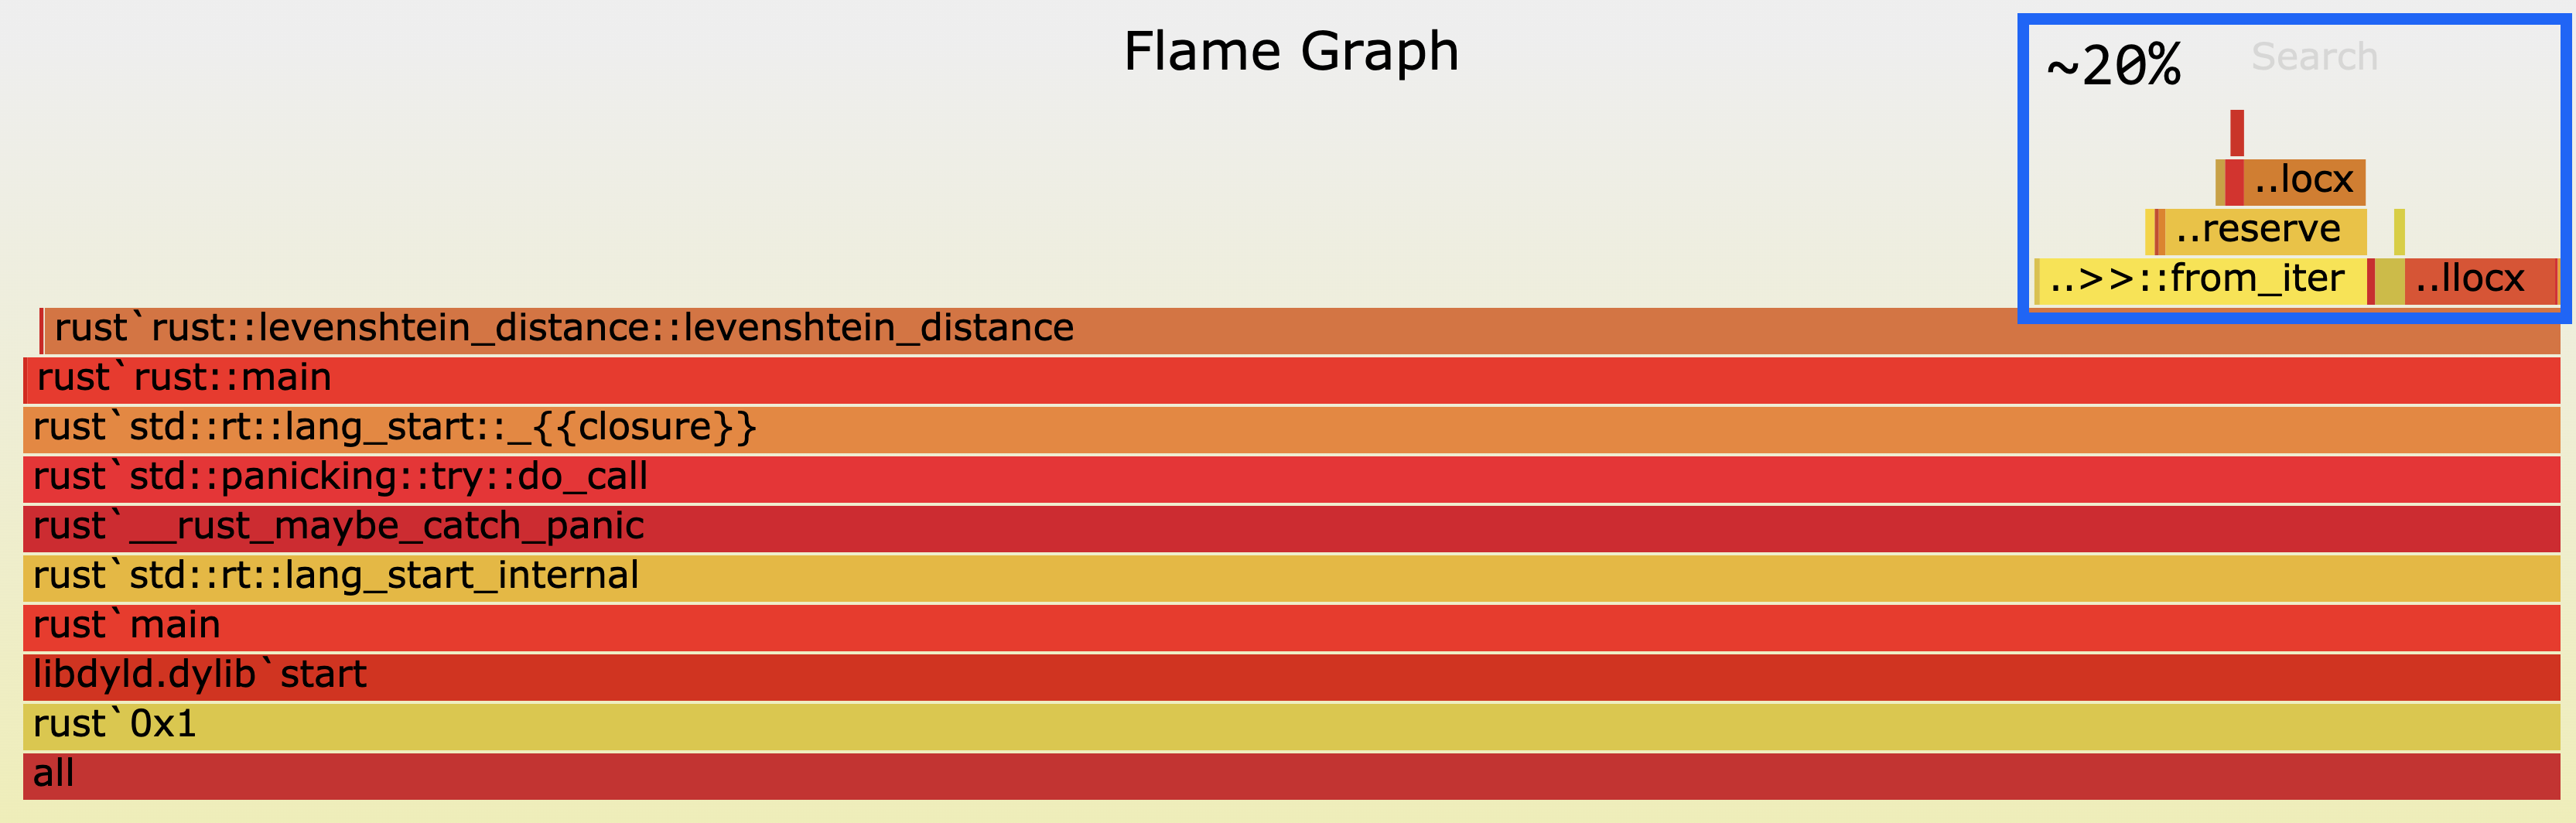 Flamegraph after allocator was changed to jemalloc. Time spent allocating dropped to 20%